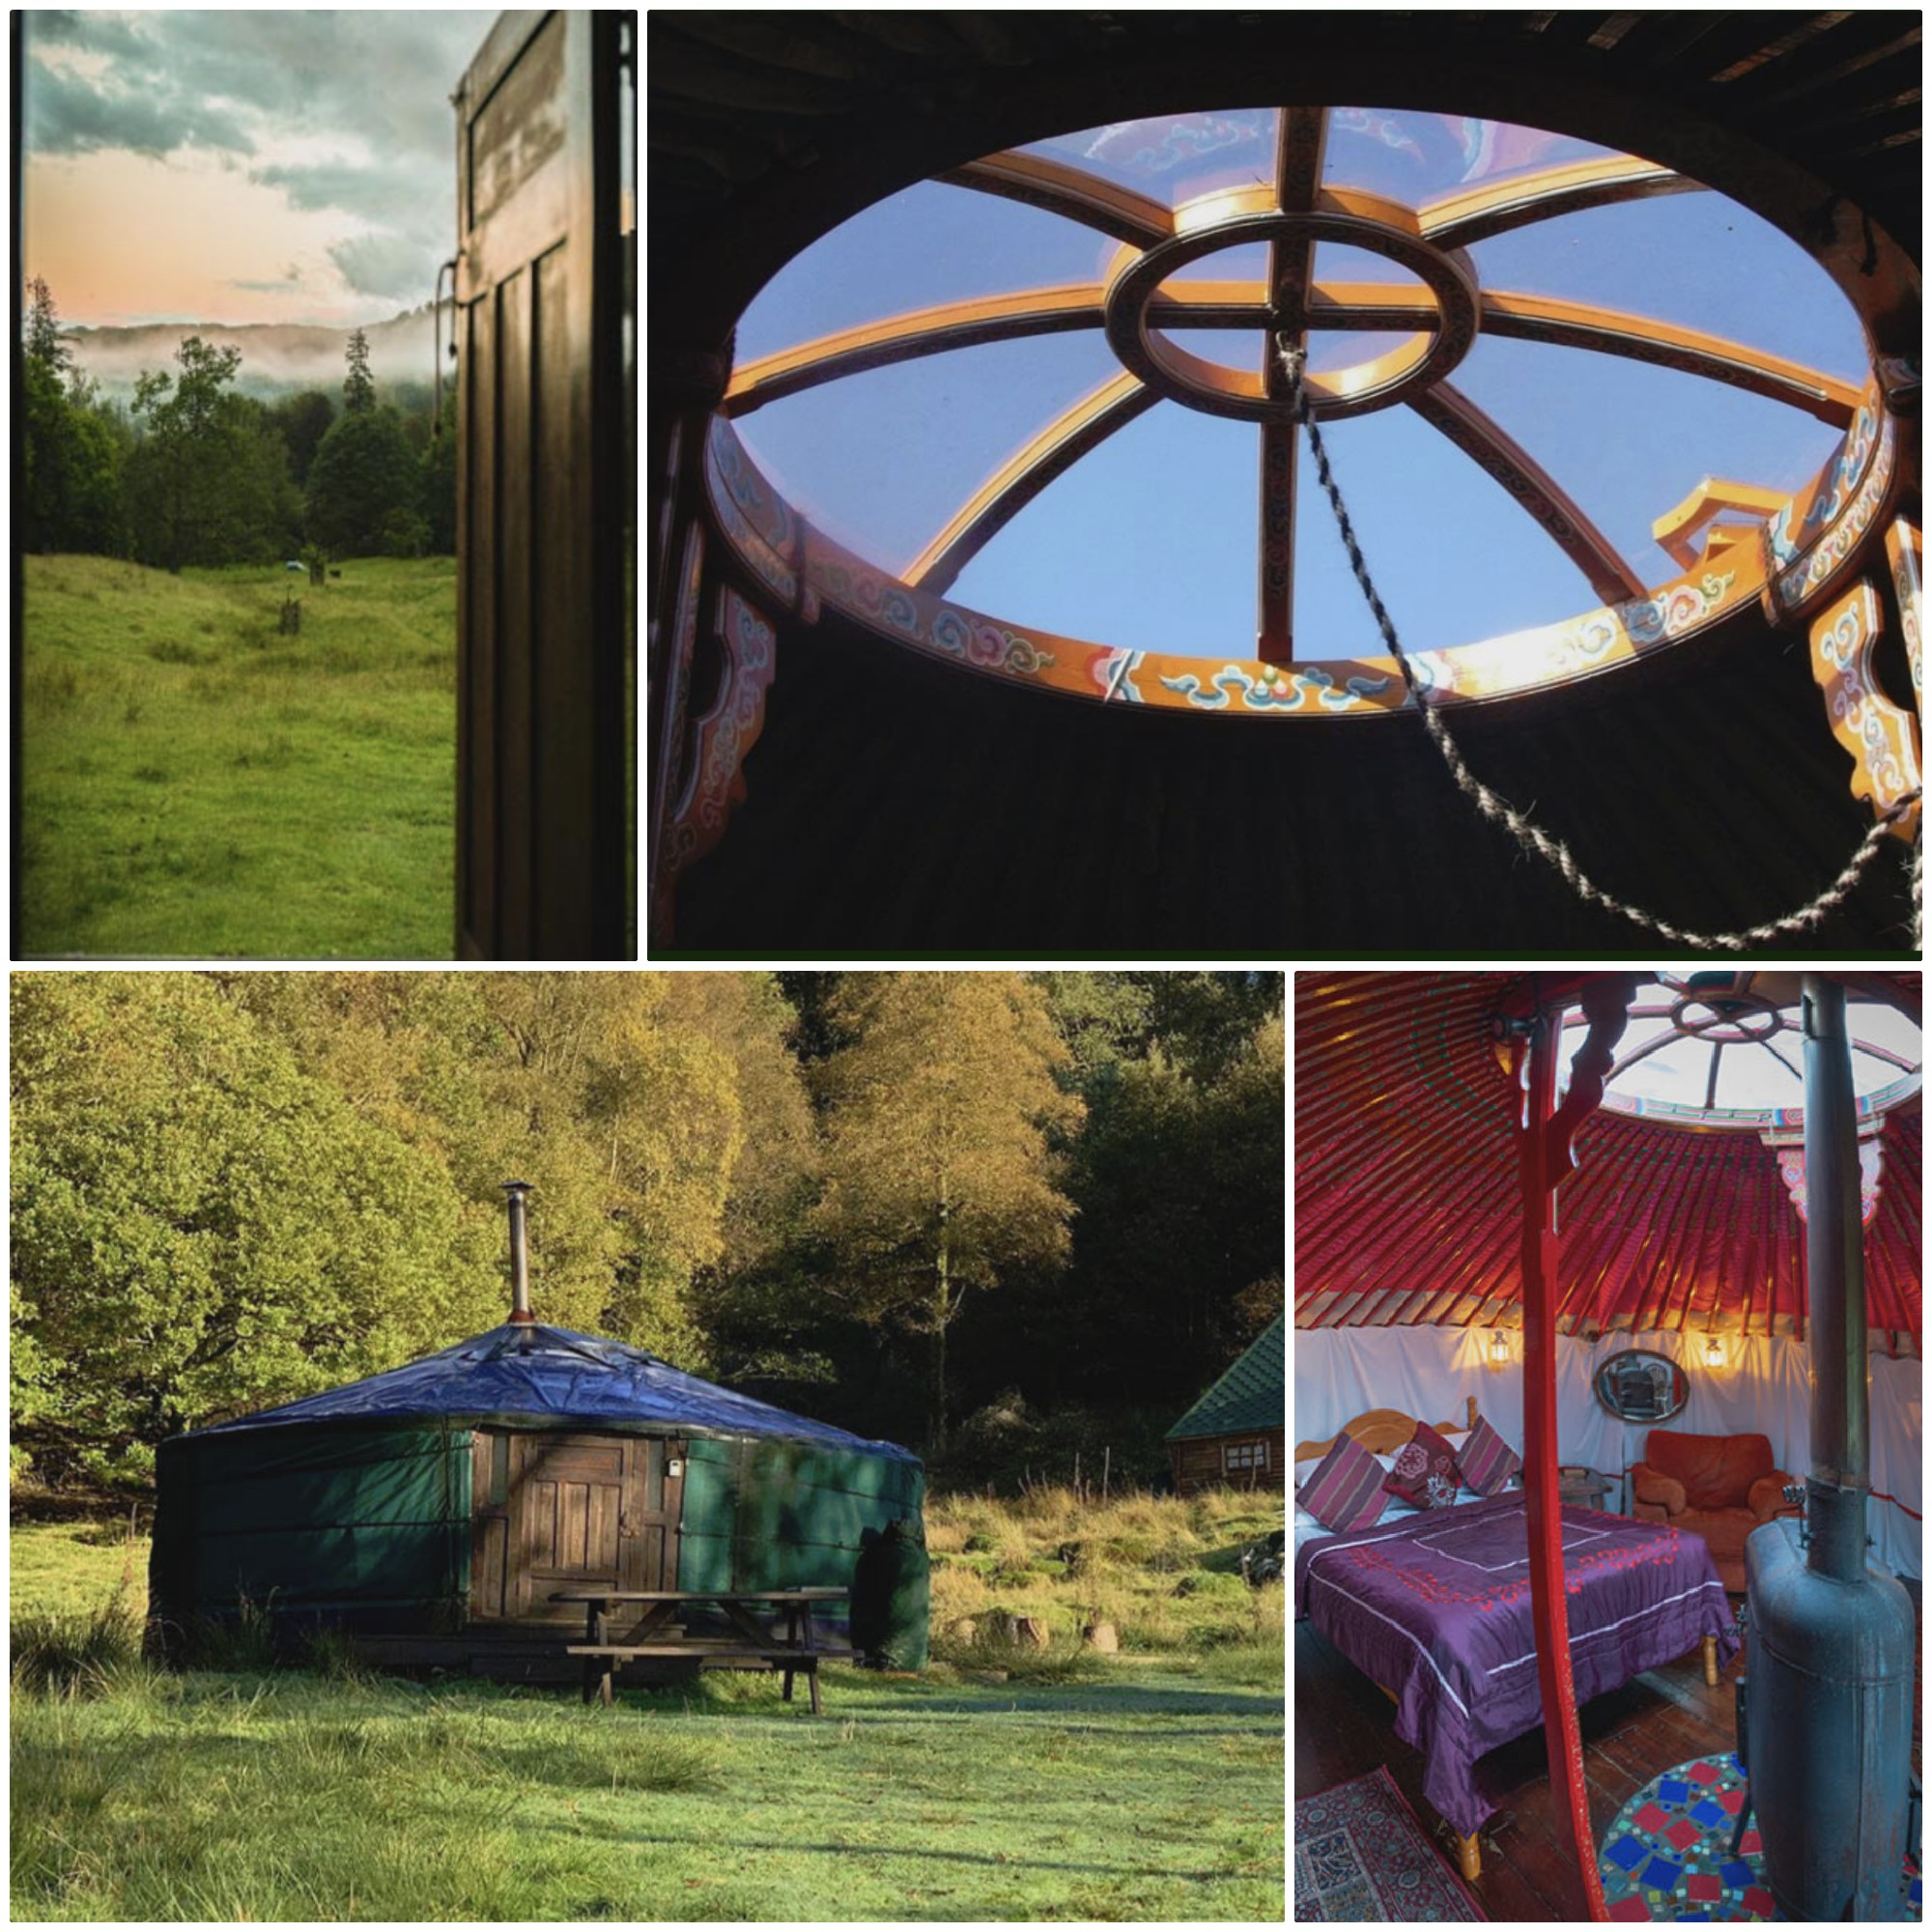 set in the wonderful grounds of Rydal Hall, these Mongolian Yurts allow you to unwind and enjoy the tranquility of nature